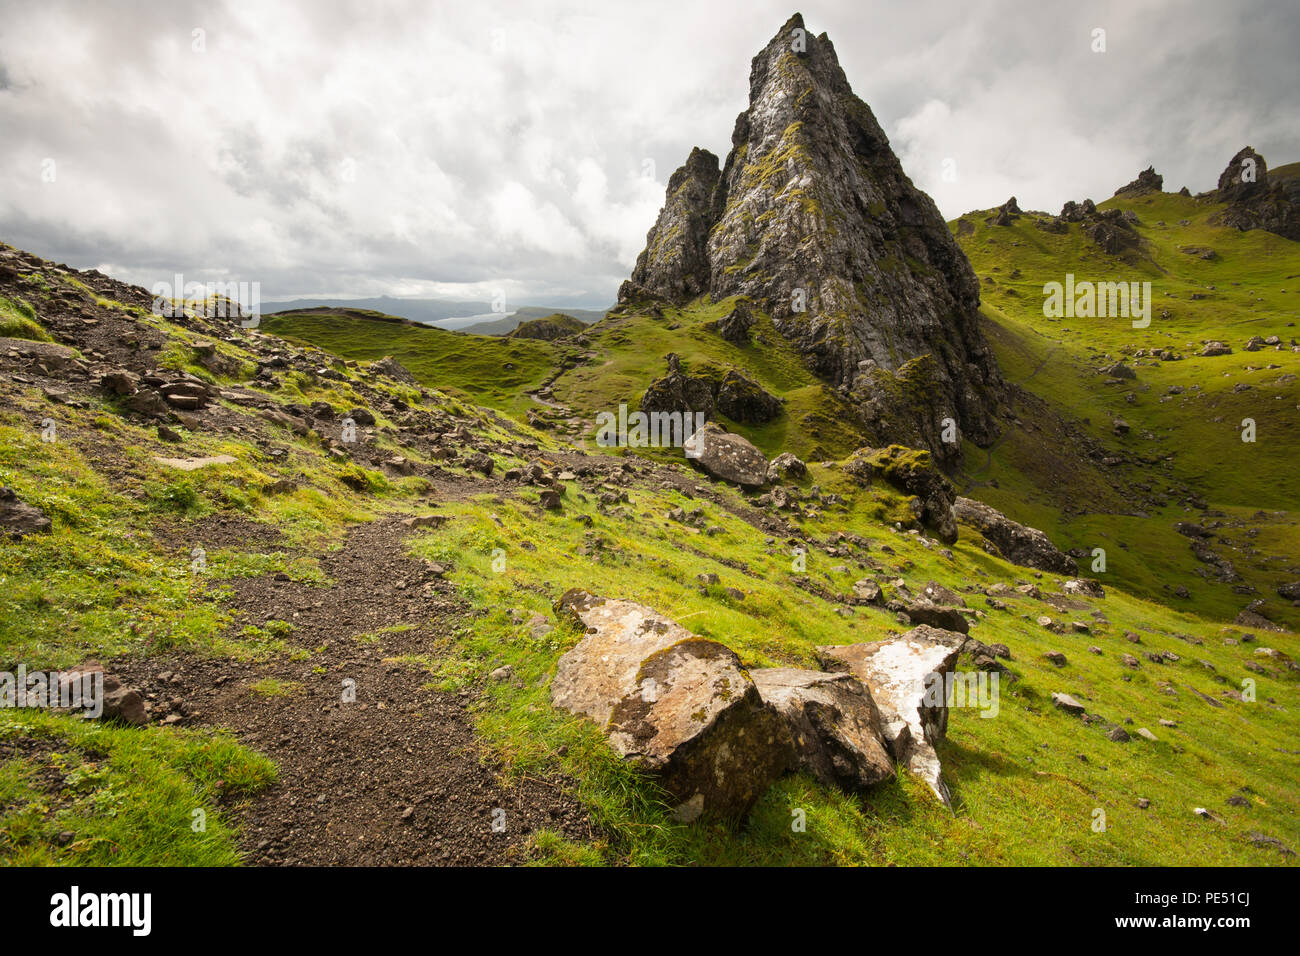 Detail of The Old of Storr - Stock Image